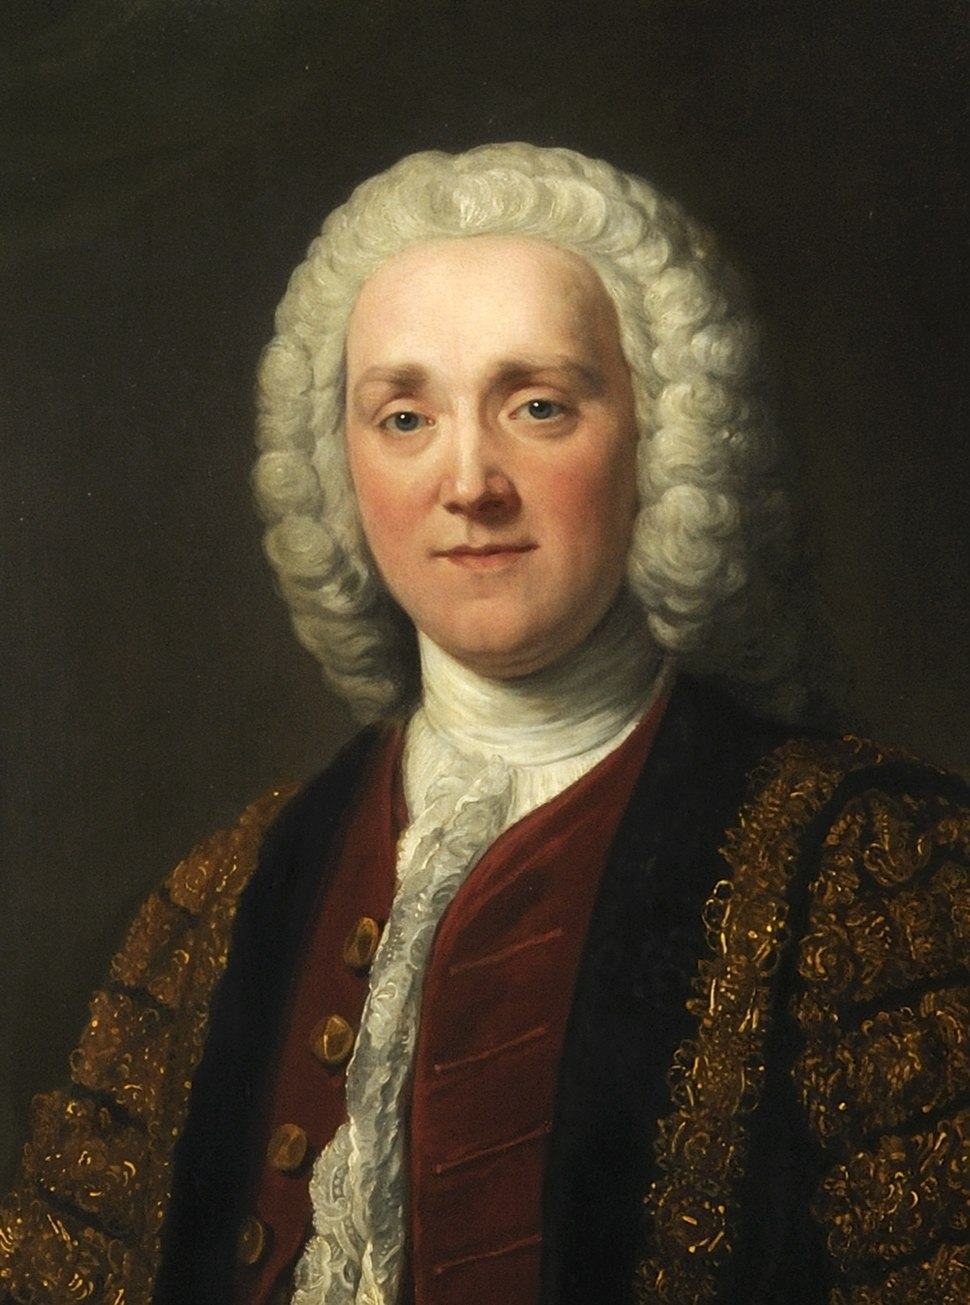 George Grenville (1712–1770) by William Hoare (1707-1792) Cropped